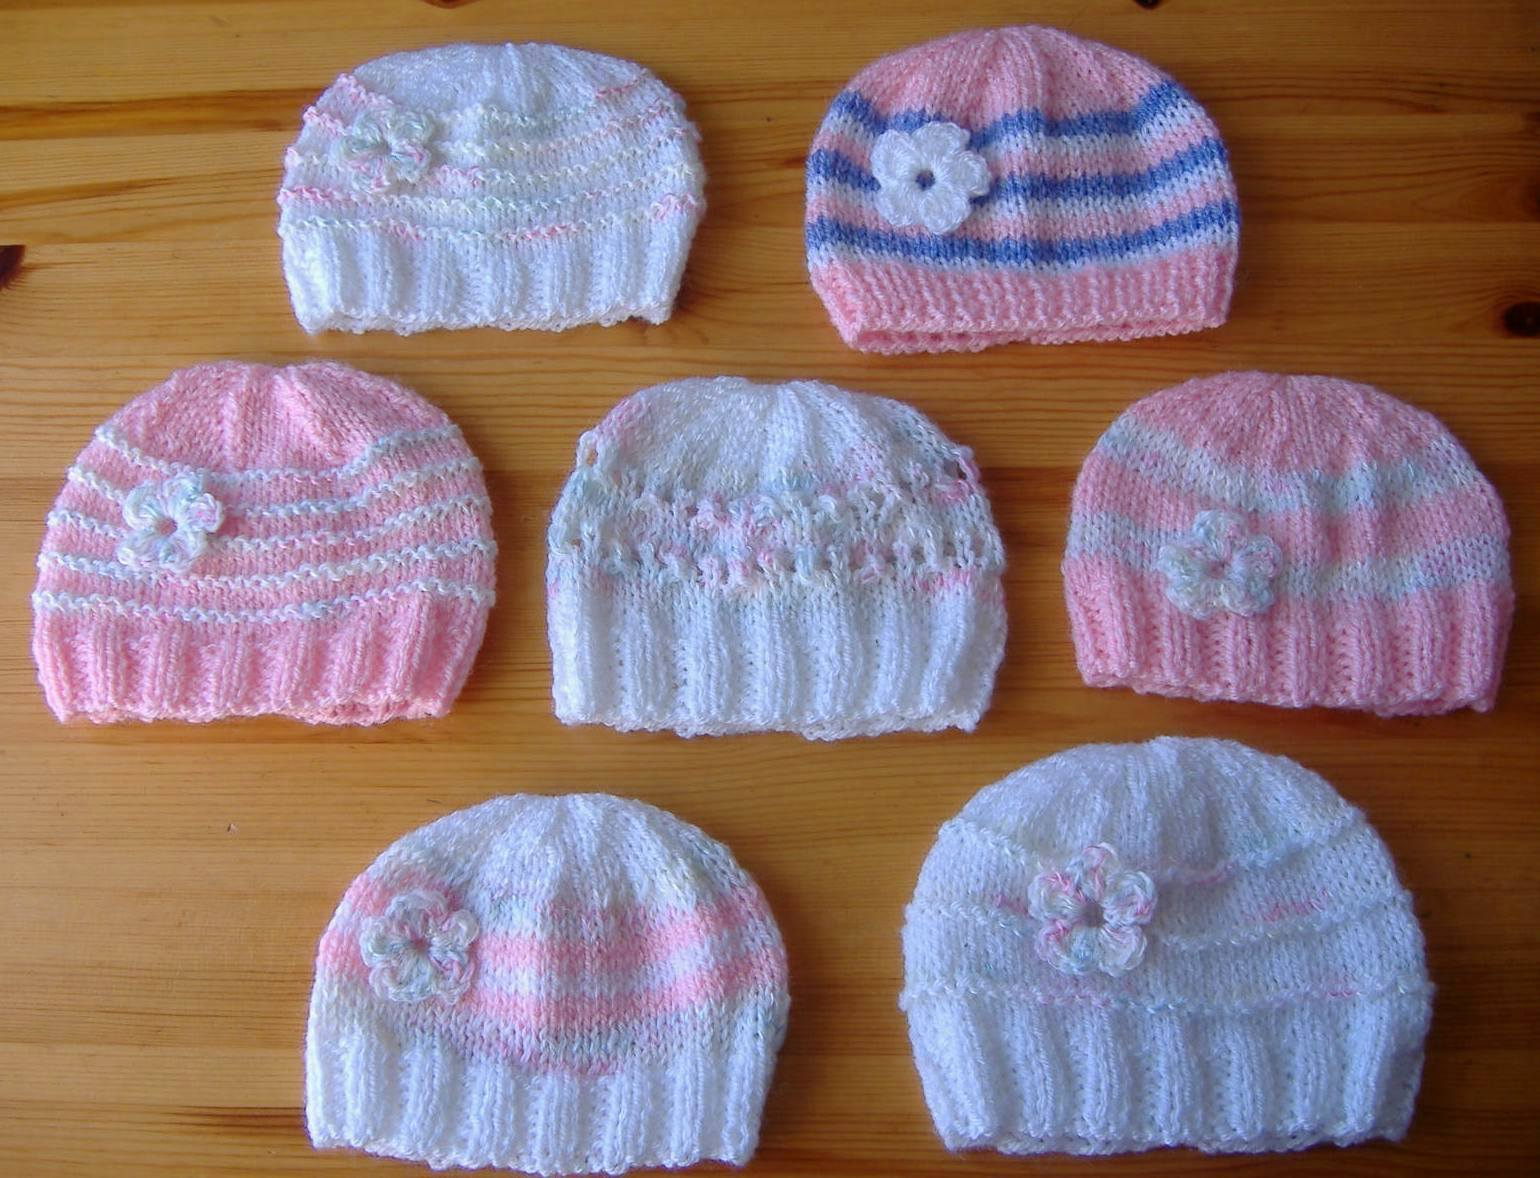 Easy Knitting Patterns For Beginners Baby Hats : mariannas lazy daisy days: Knitted Baby Girl Hats